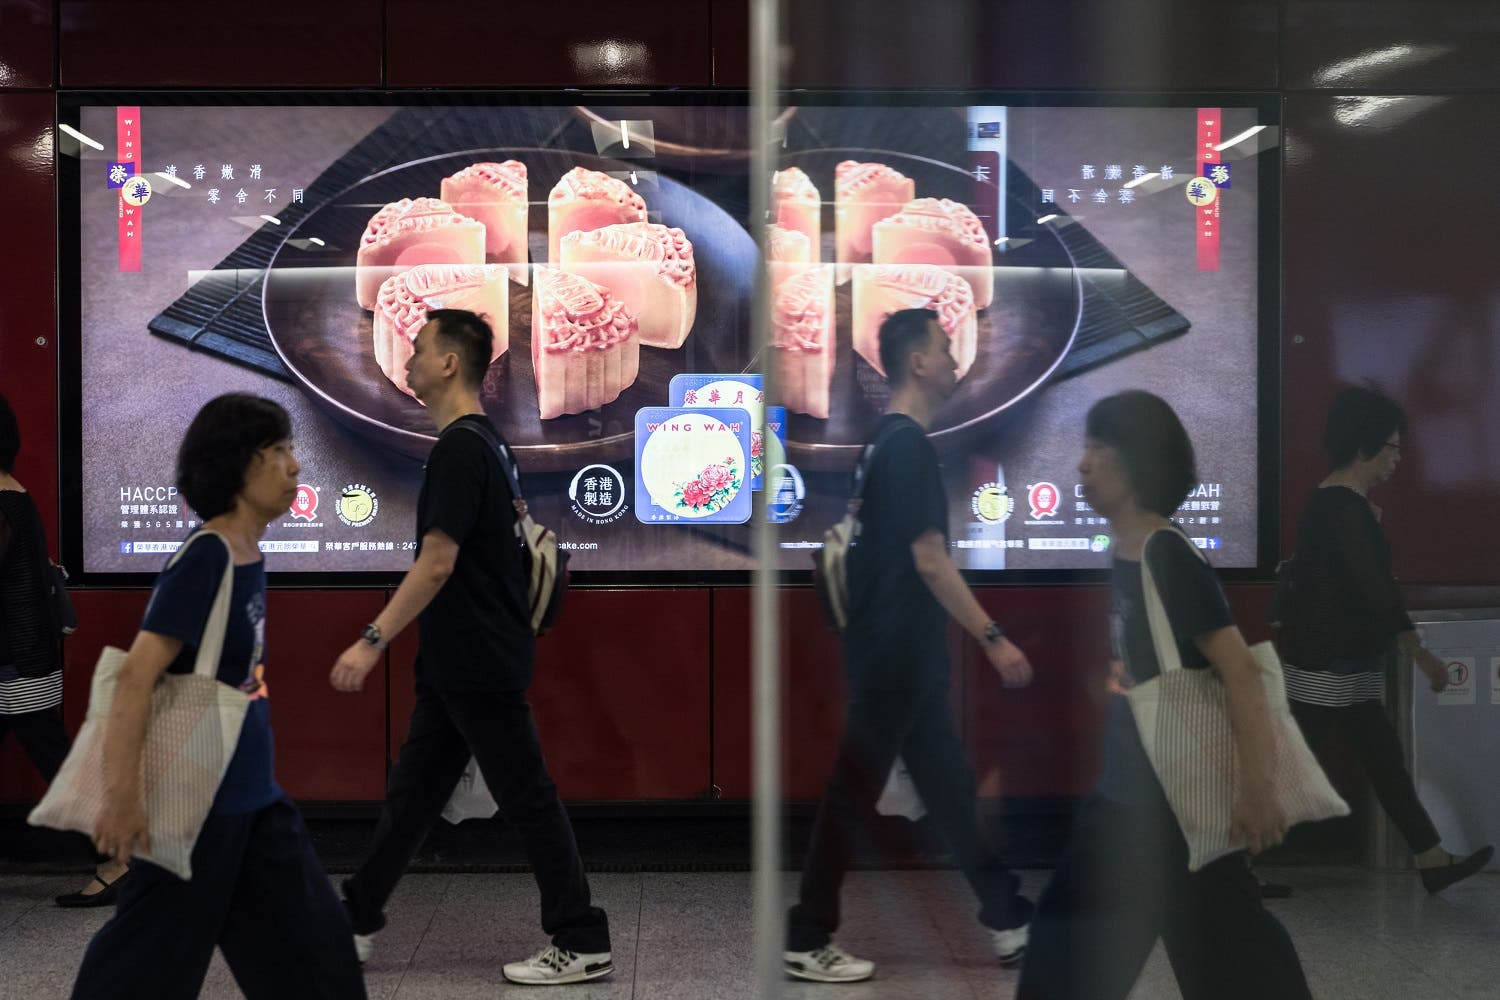 In this picture taken on September 2, 2017, people walk past an advertisement for mooncakes in a train station in Hong Kong. (AFP)